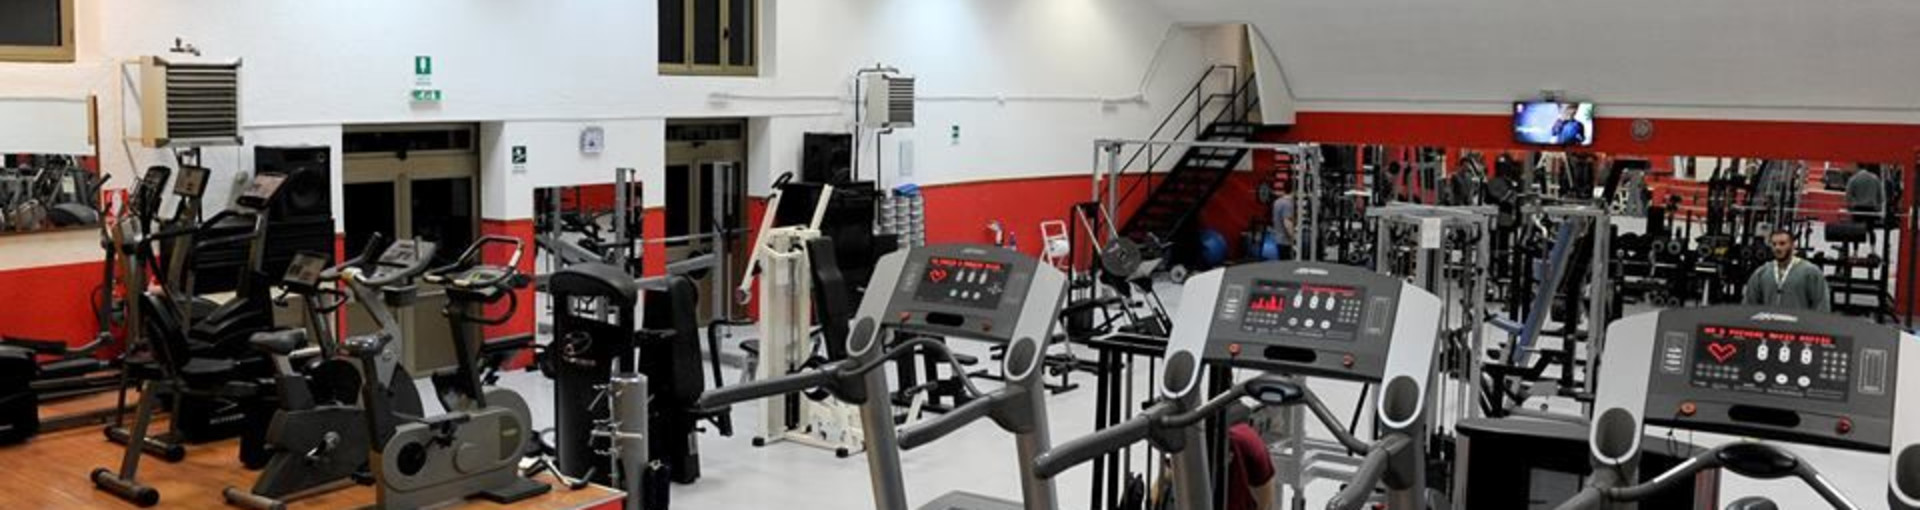 Fly Gym  - Caselle Torinese